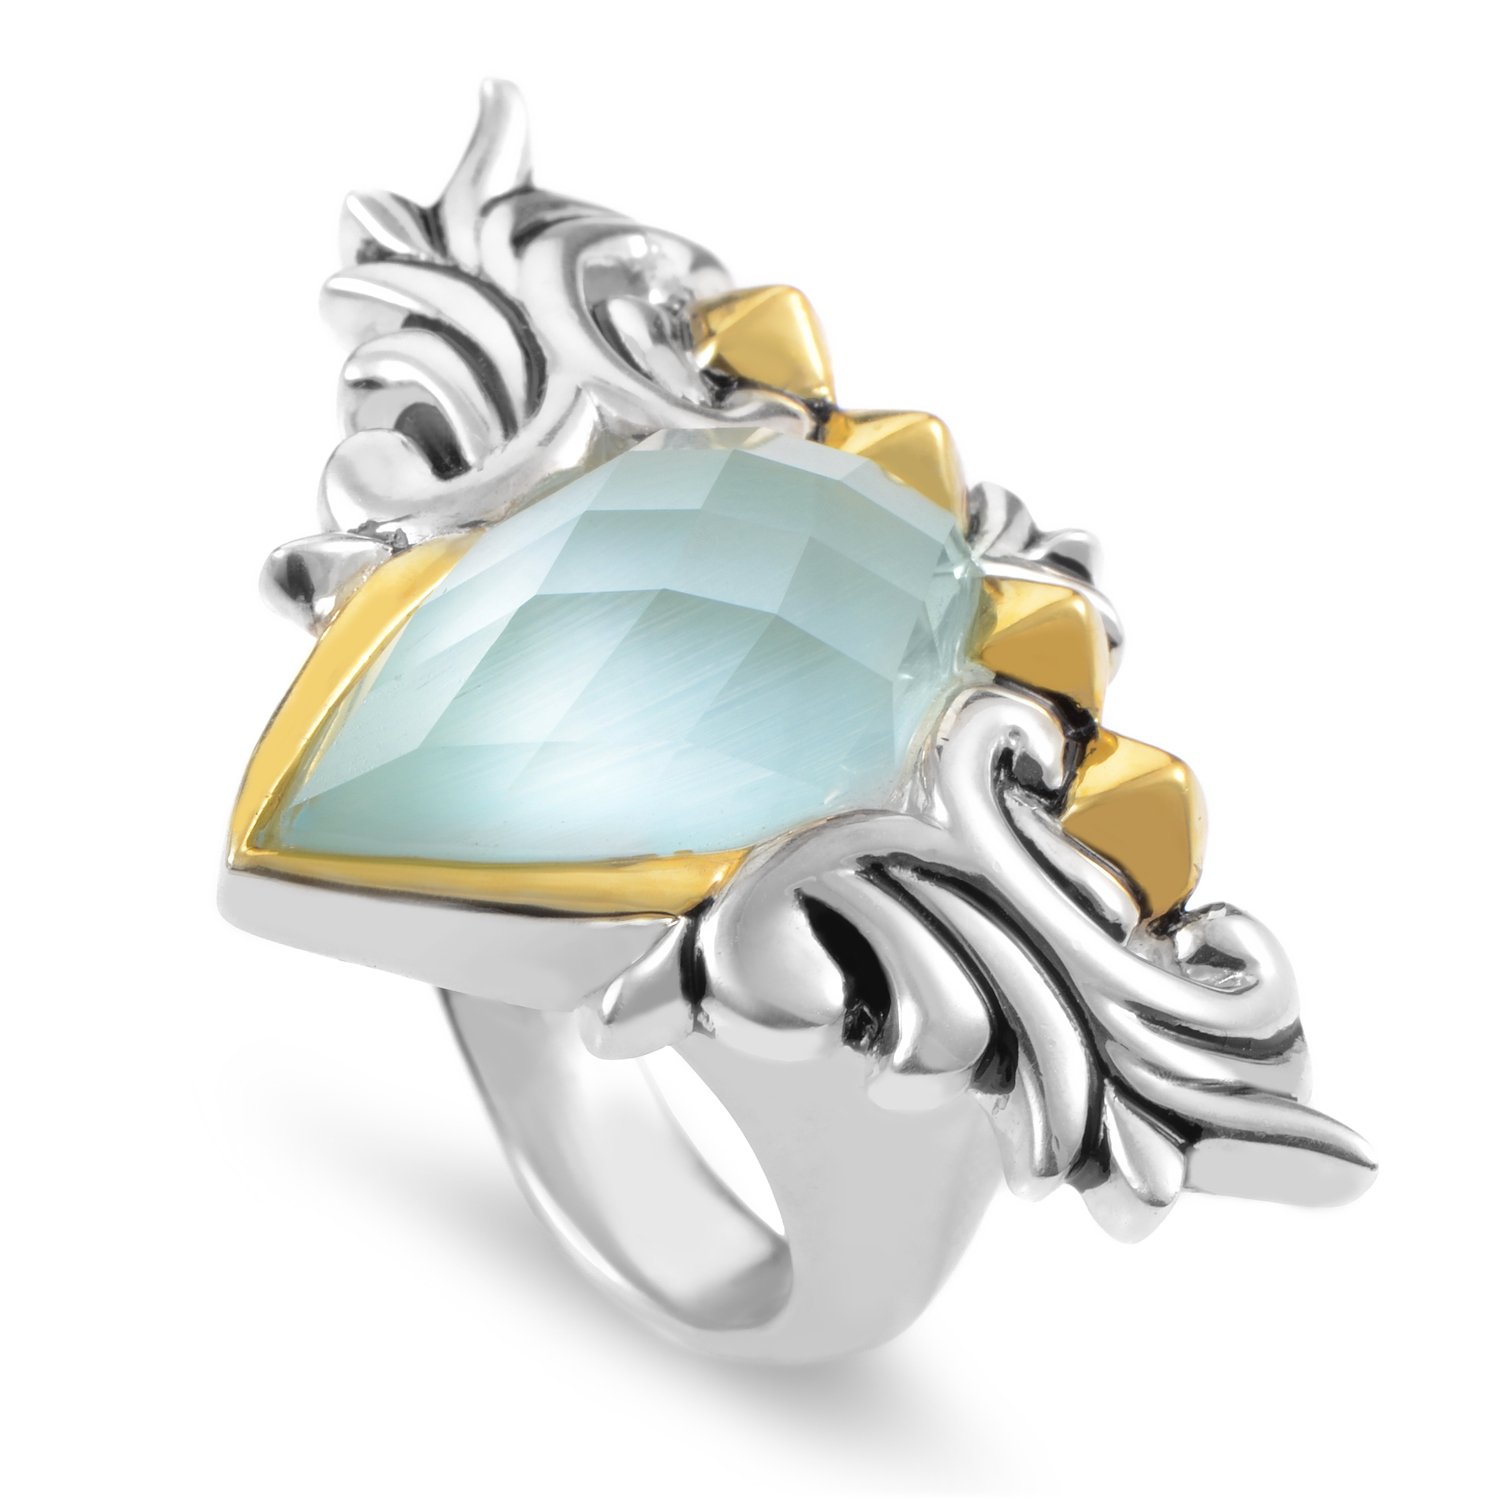 Superstud Women's Sterling Silver & Gemstone Ring 3012781008